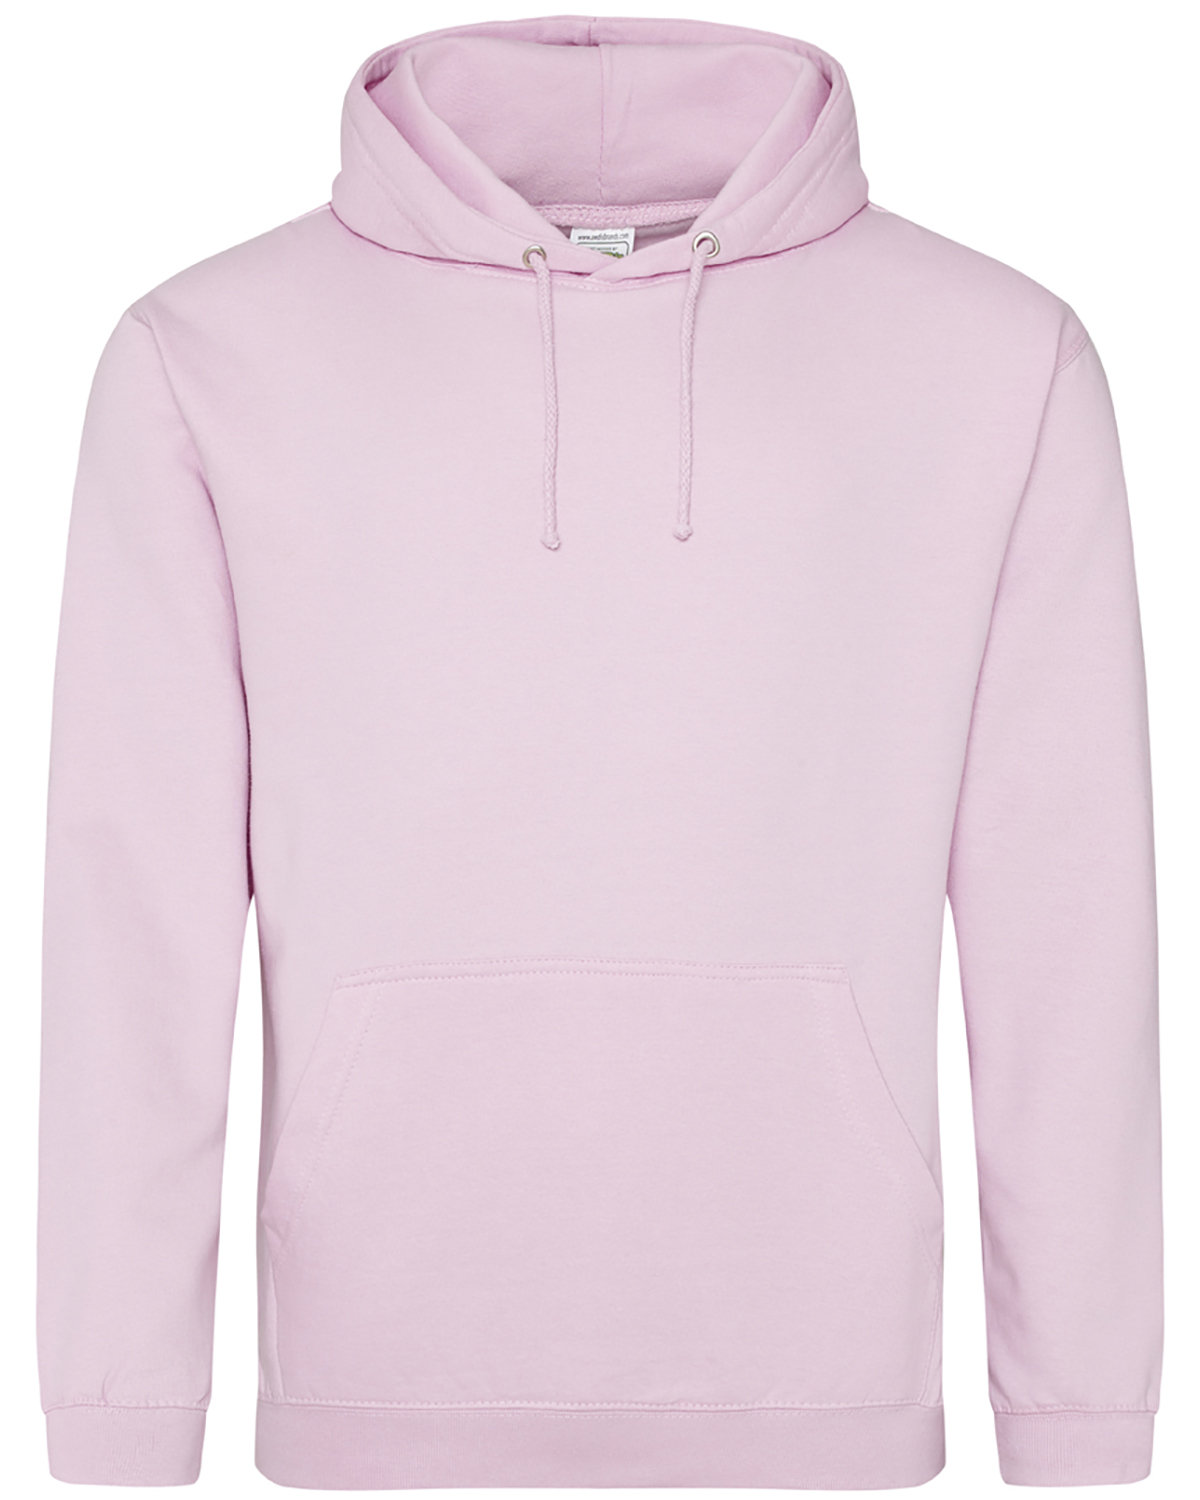 Just Hoods By AWDis Men's 80/20 Midweight College Hooded Sweatshirt BABY PINK